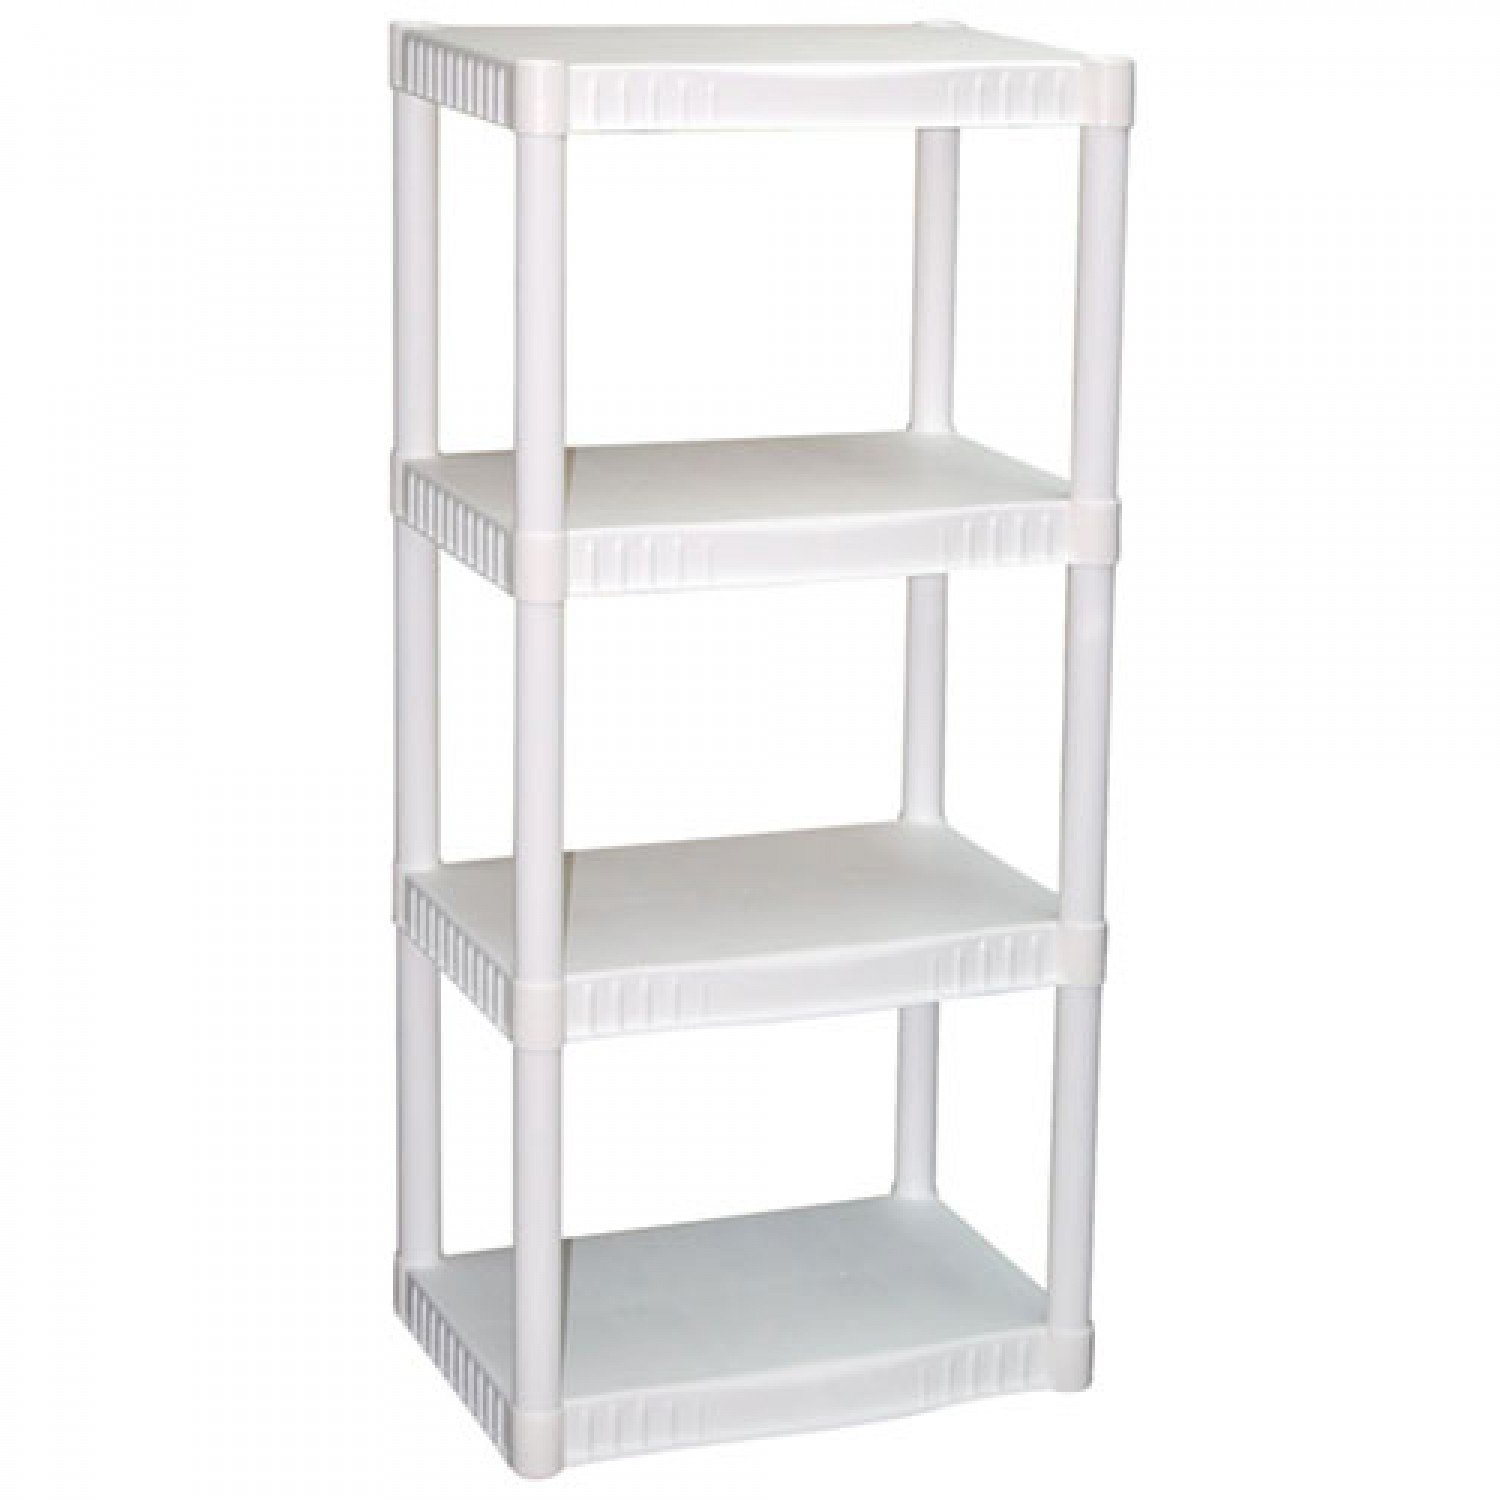 Amazon.com: Plano 4-Tier Heavy-Duty Plastic Shelving, White, 2 ...